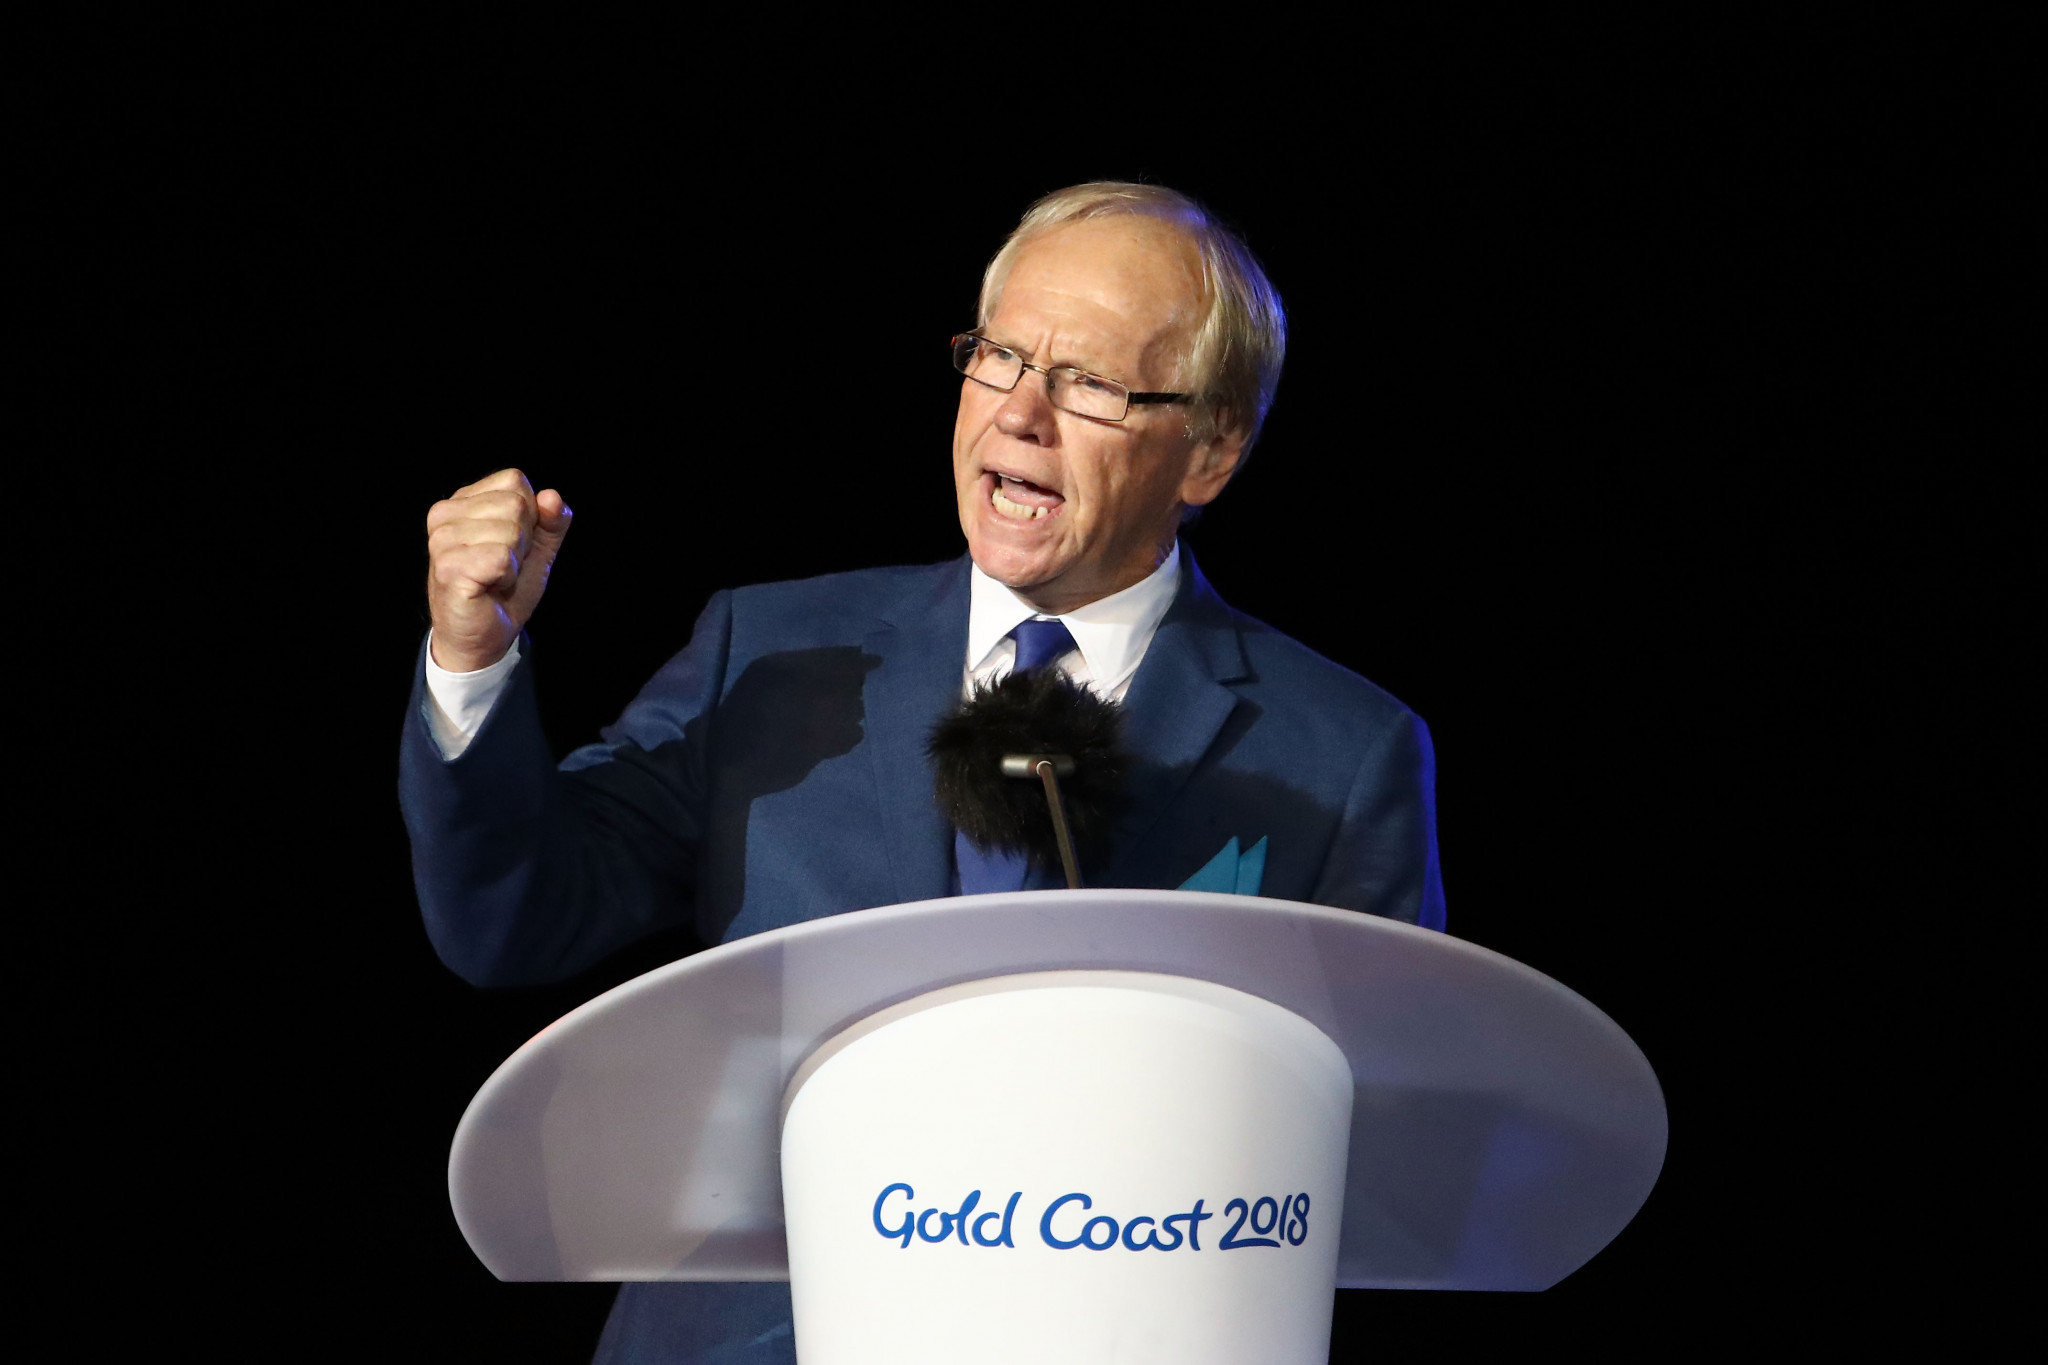 Gold Coast chairman Peter Beattie has apologised for the Closing Ceremony ©Getty Images